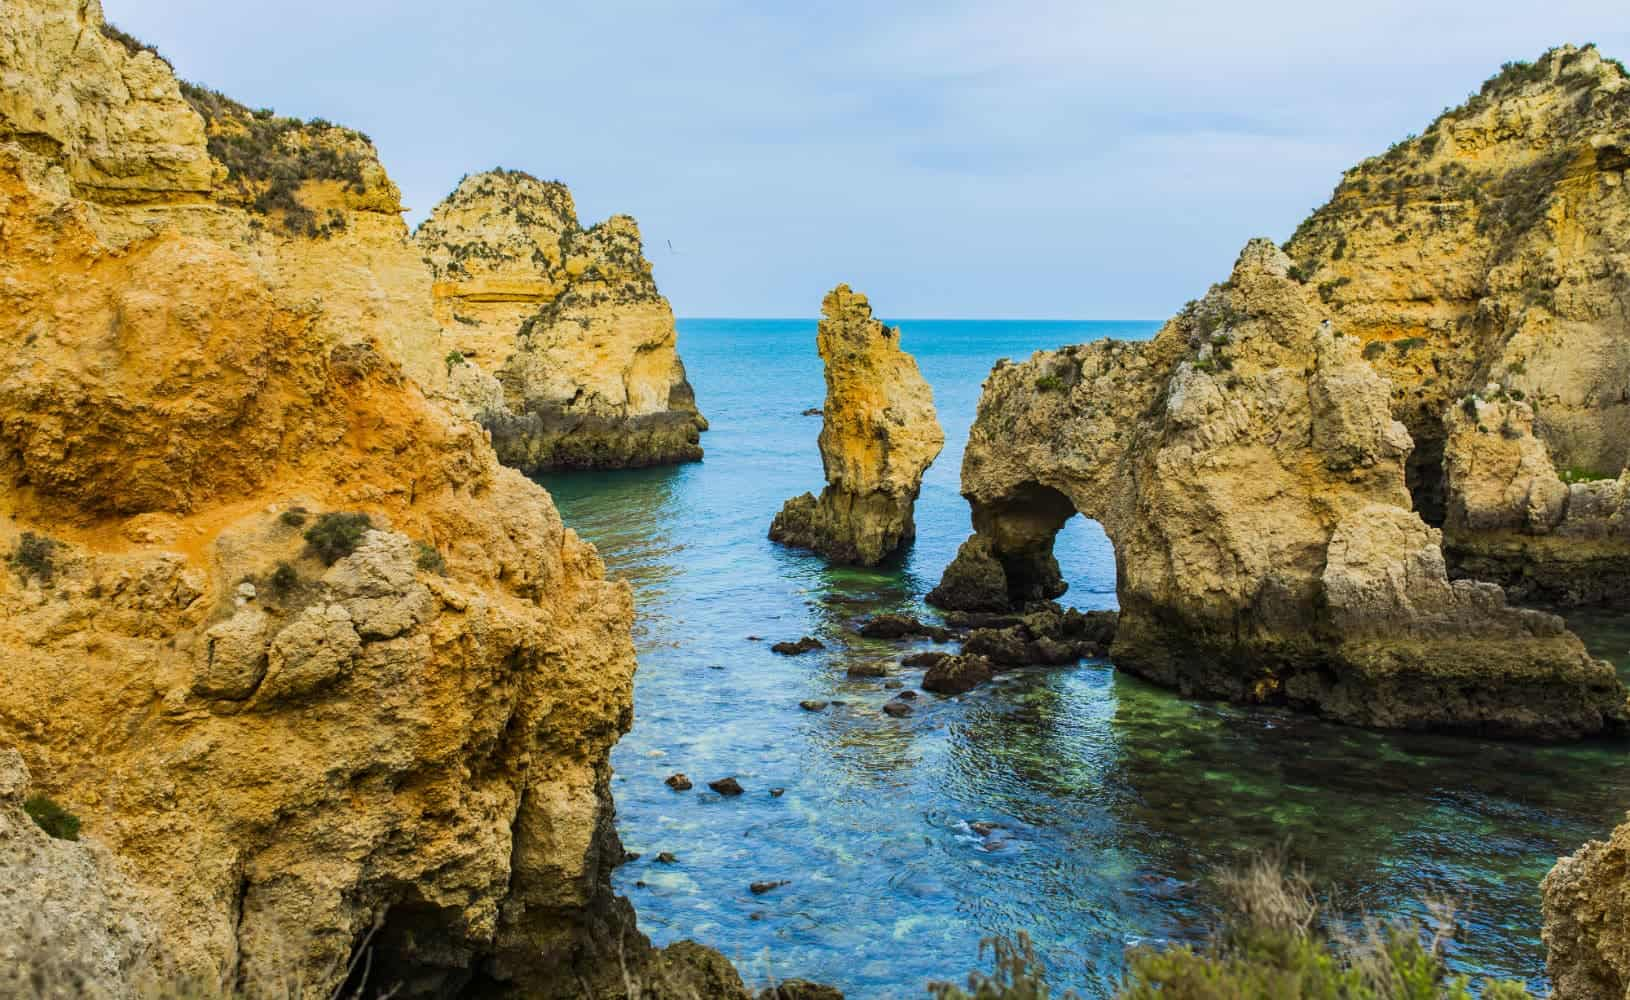 Portugal Algarve coastline clifs